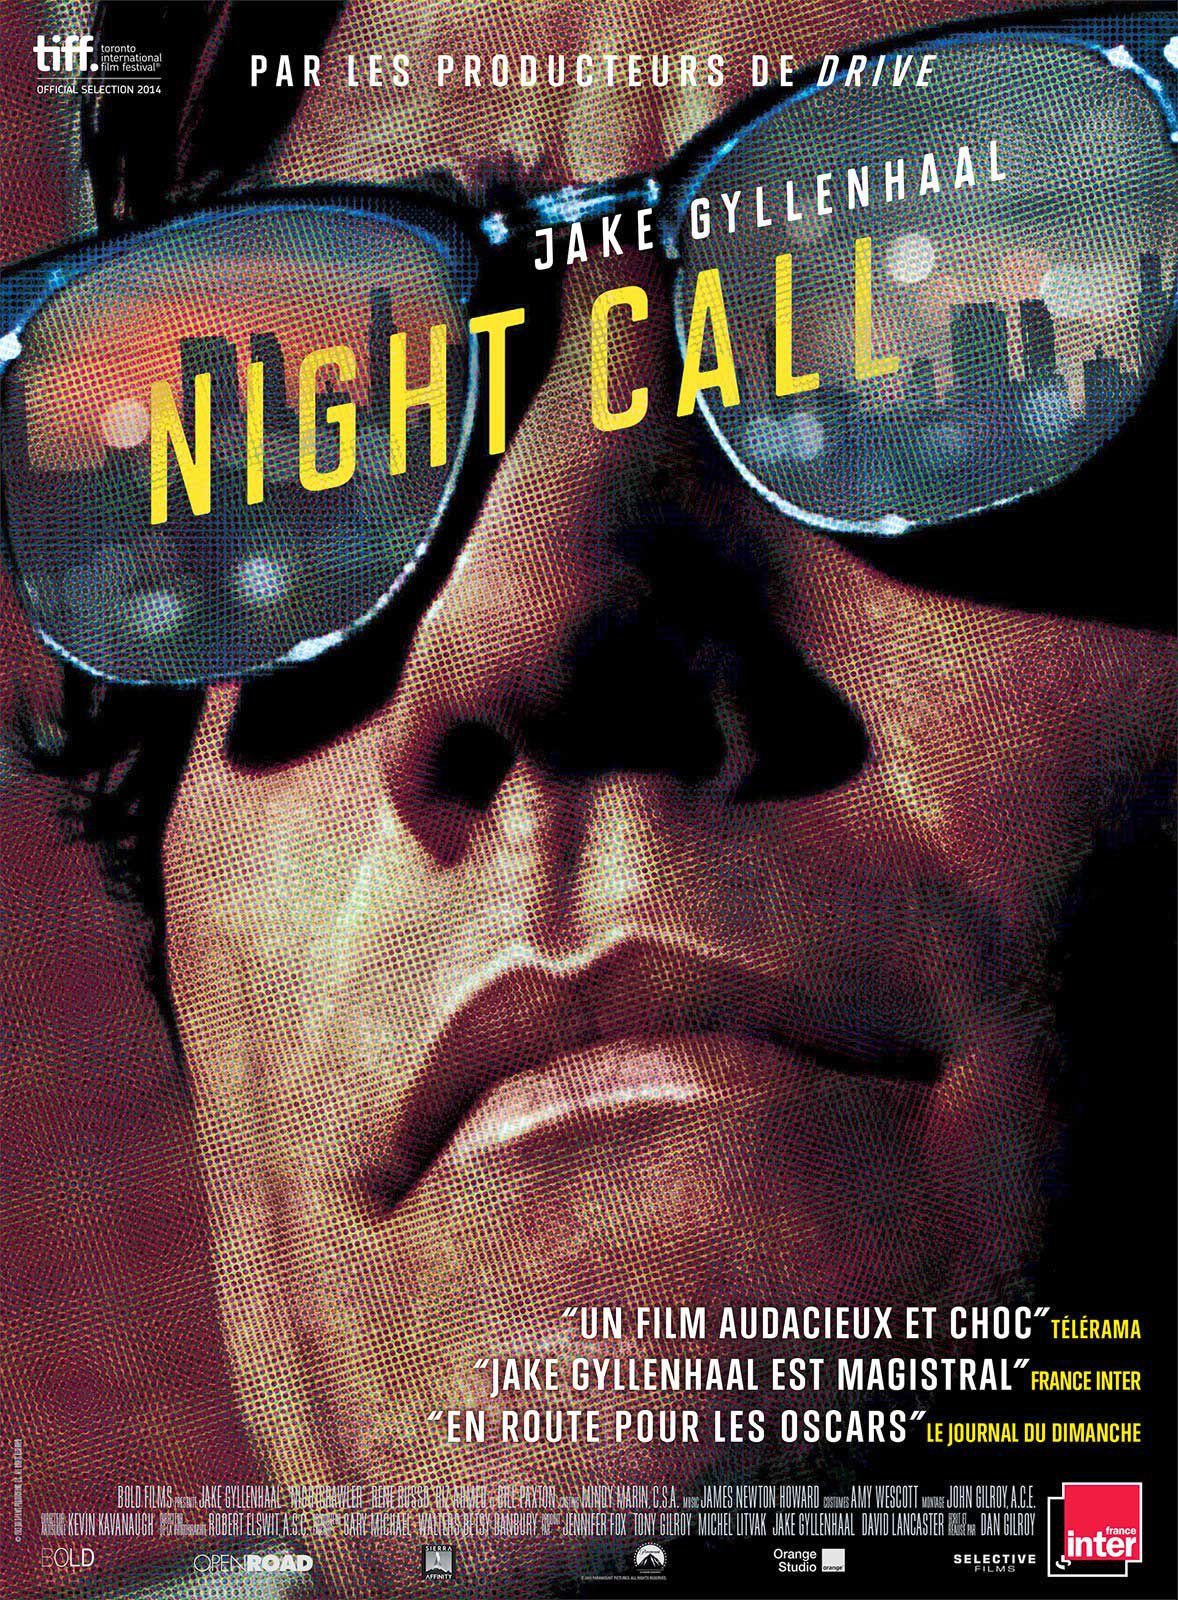 Propositions Film Commun - Février 2015 Night_Call